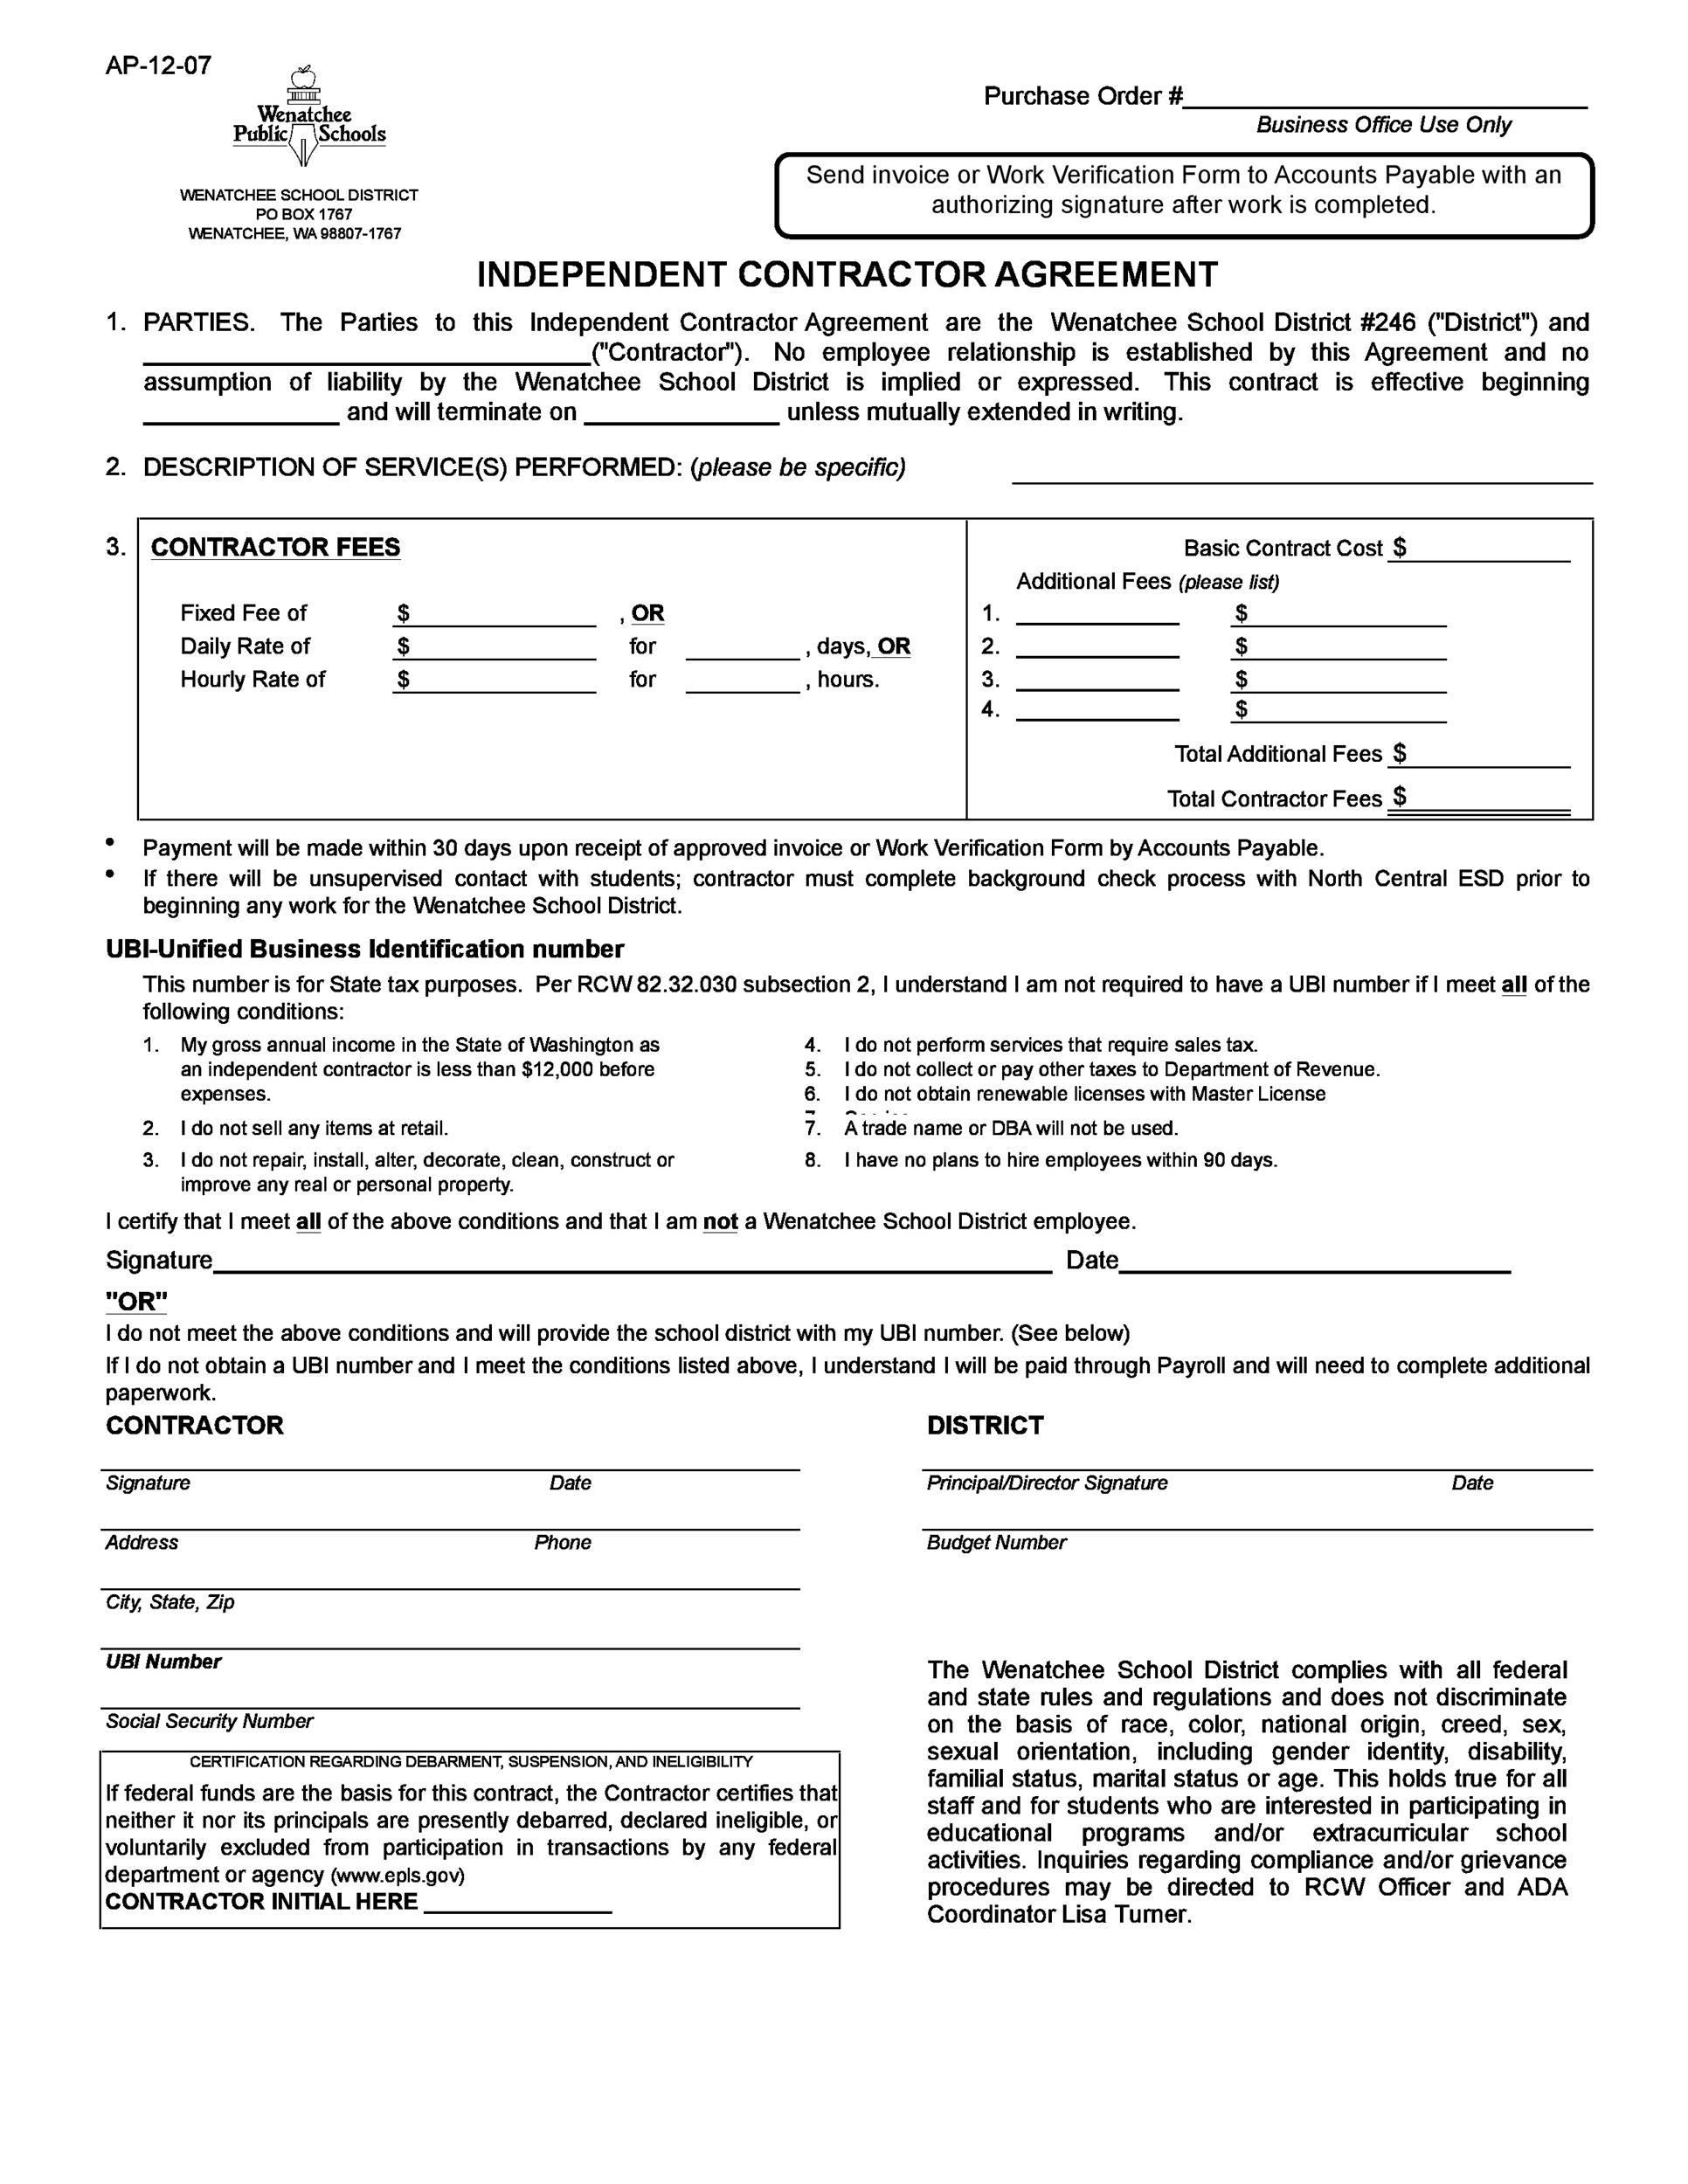 independent contractor agreement 38